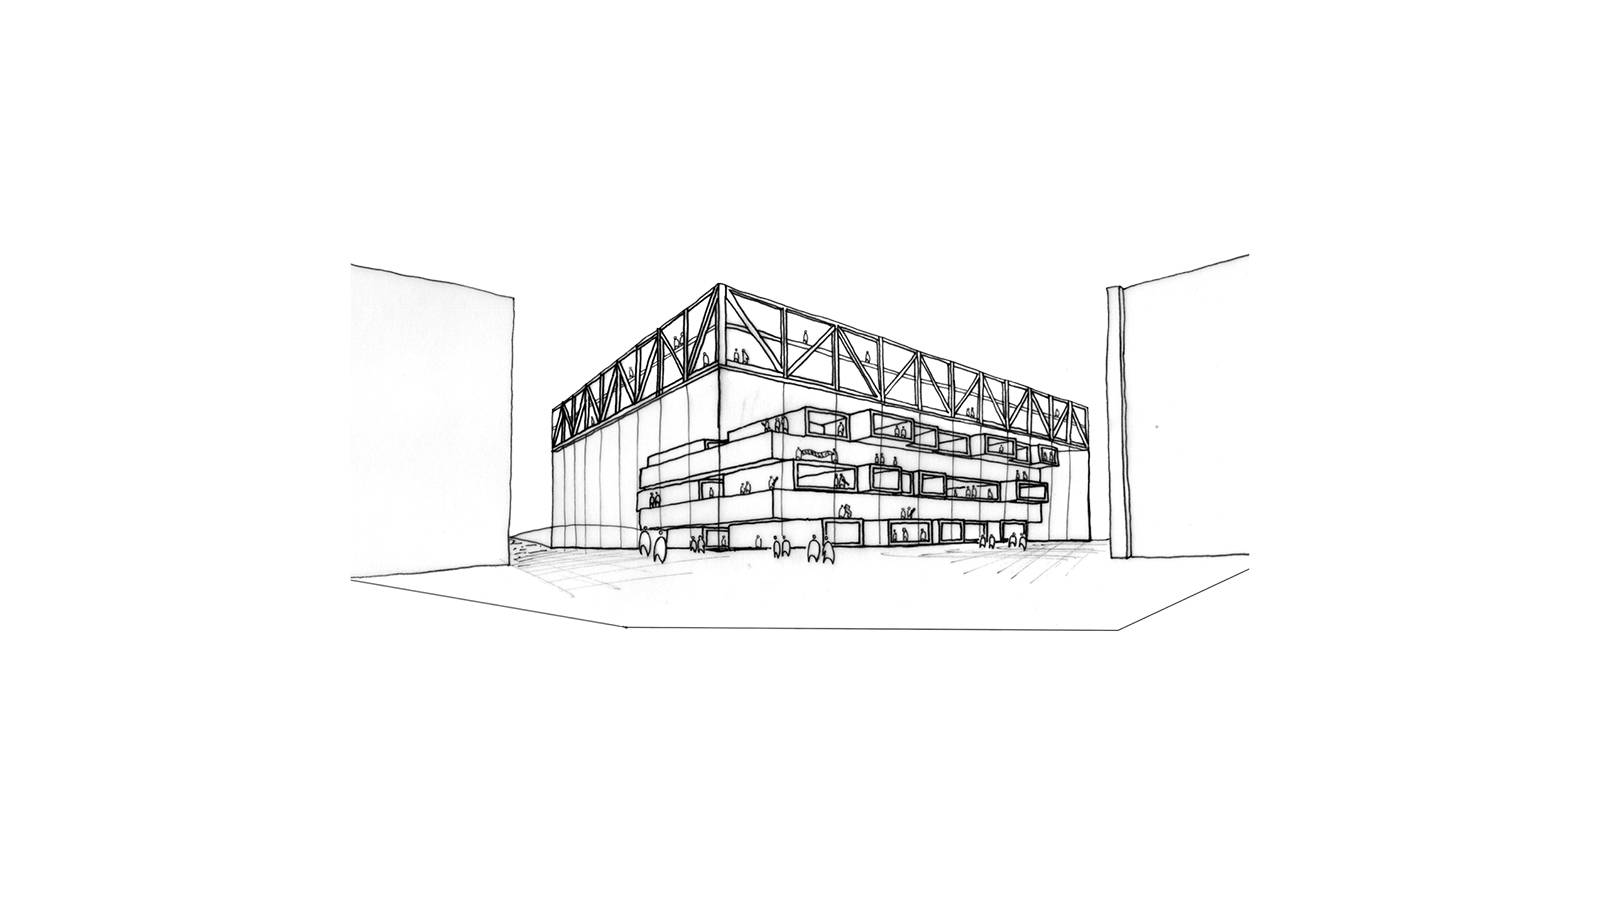 ART, ARCHITECTURE AND MUSIC SCHOOL - NTNU – Open Campus - SPOL Architects